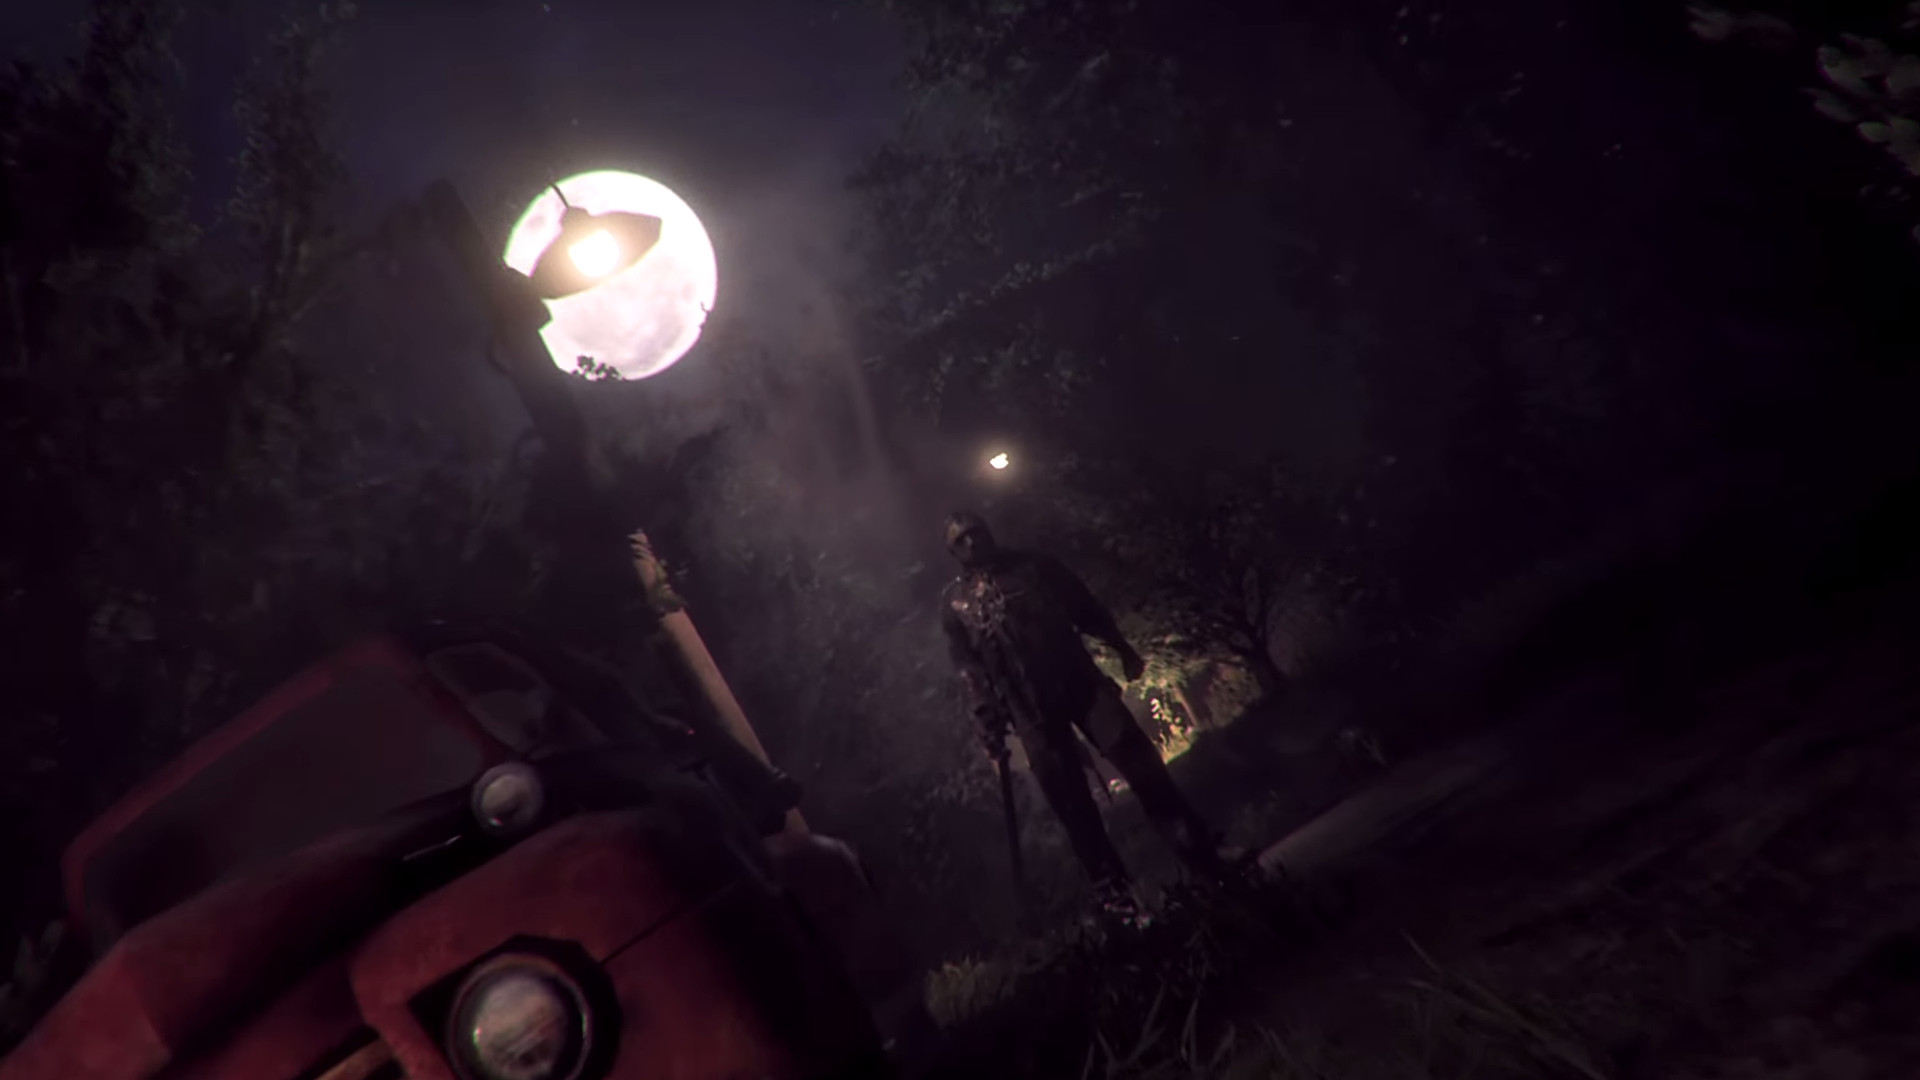 Res: 1920x1080, Friday the 13th: The Game HD Wallpapers 15 - 1920 X 1080